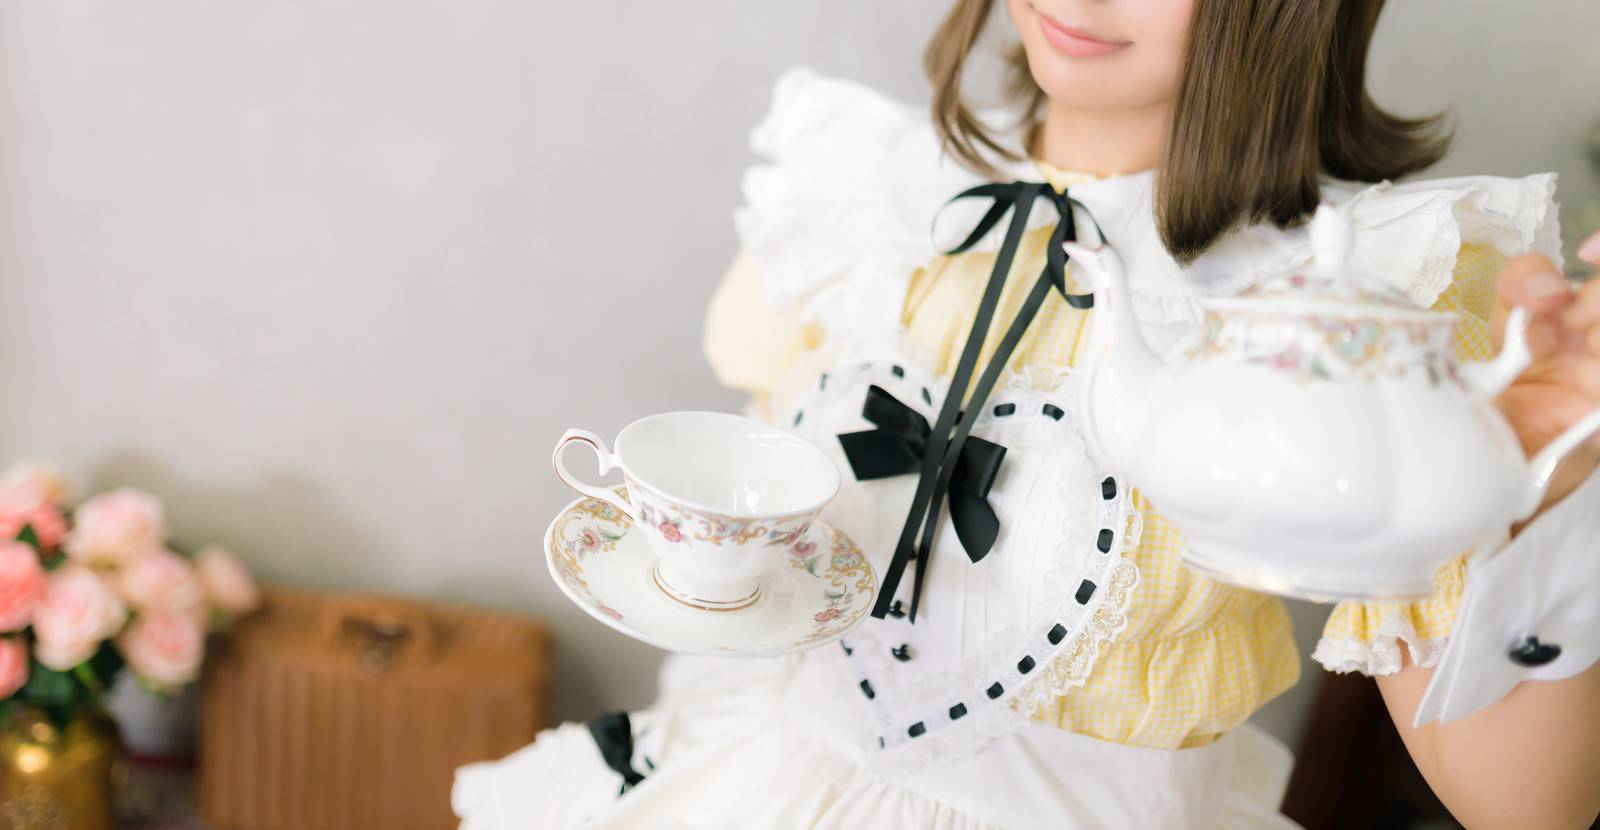 So Kawaii! But are Maid Cafes really worth your time when you visit Tokyo?